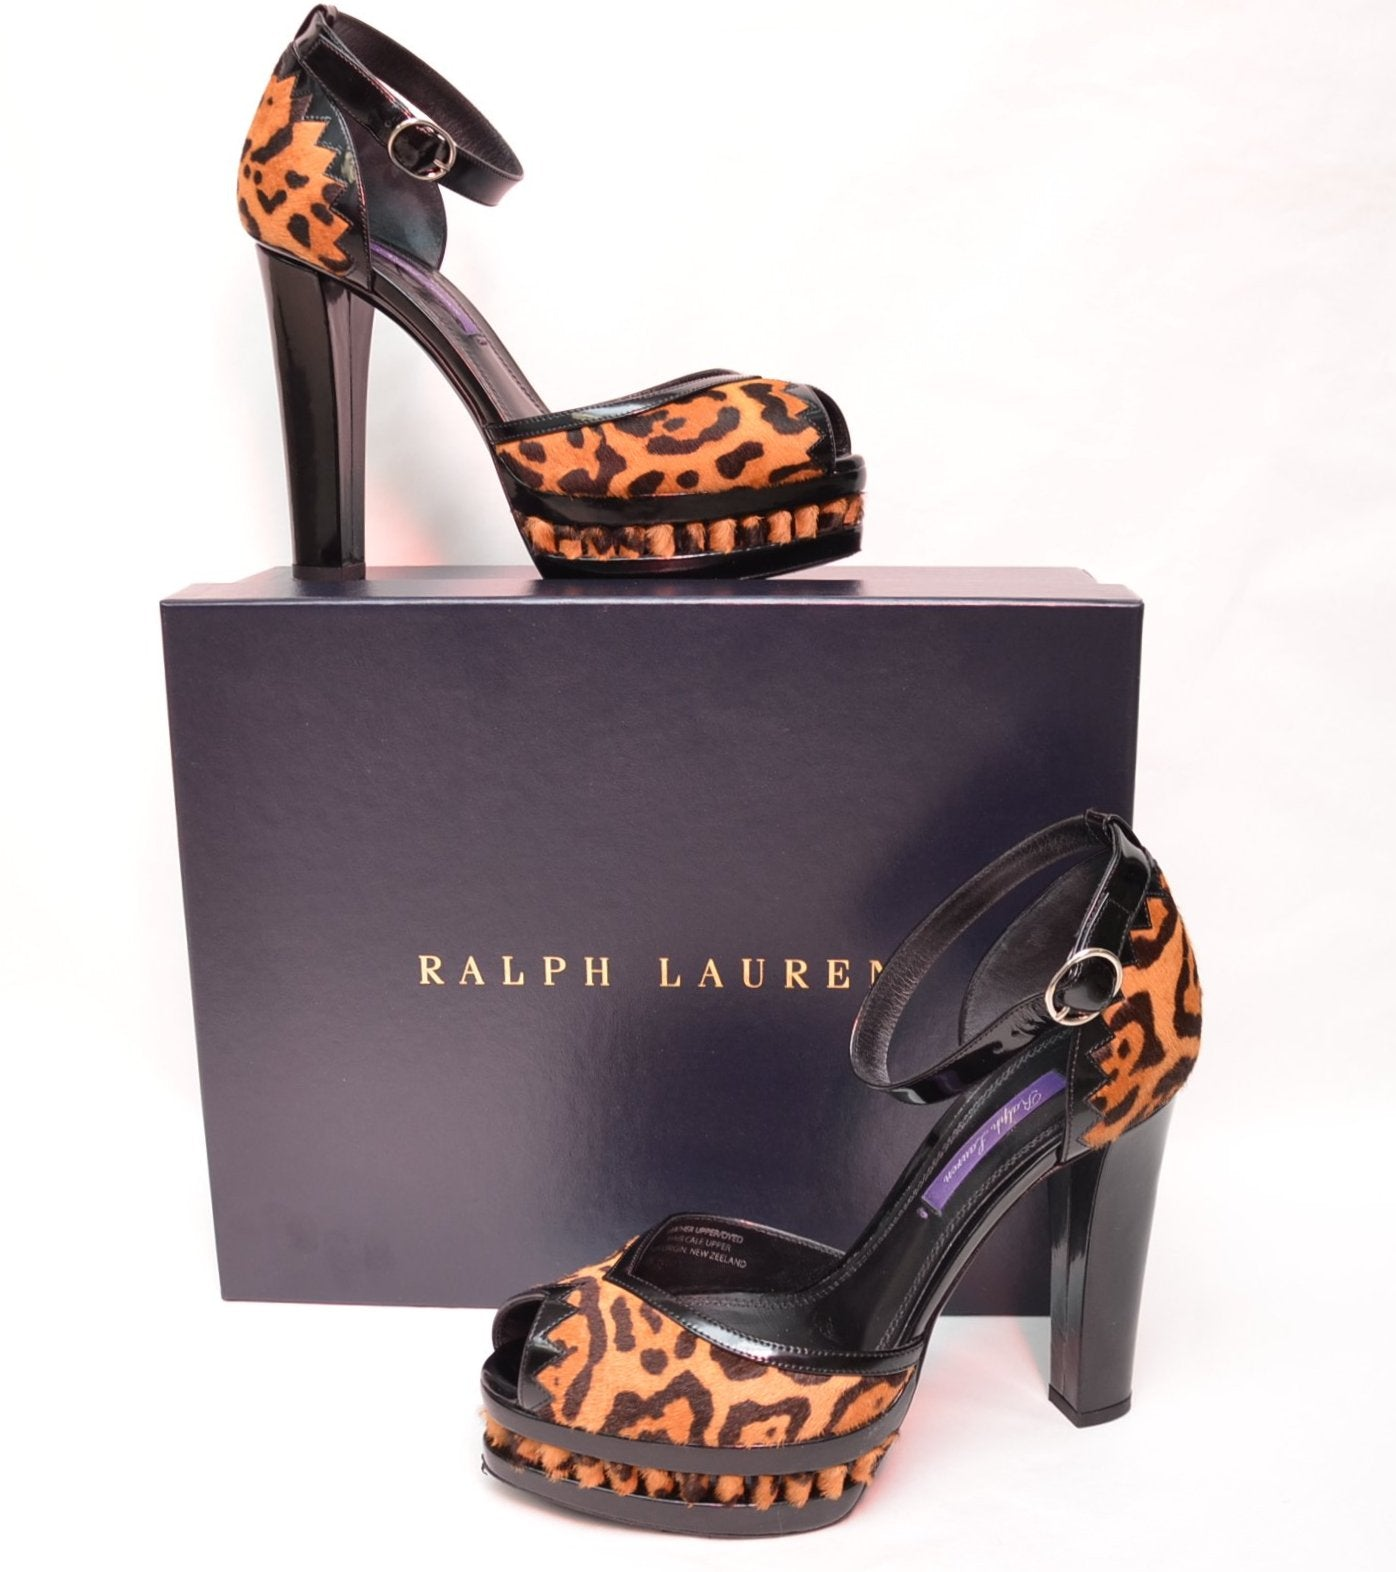 RALPH LAUREN COLLECTION - Scarpe N° 37 1/2